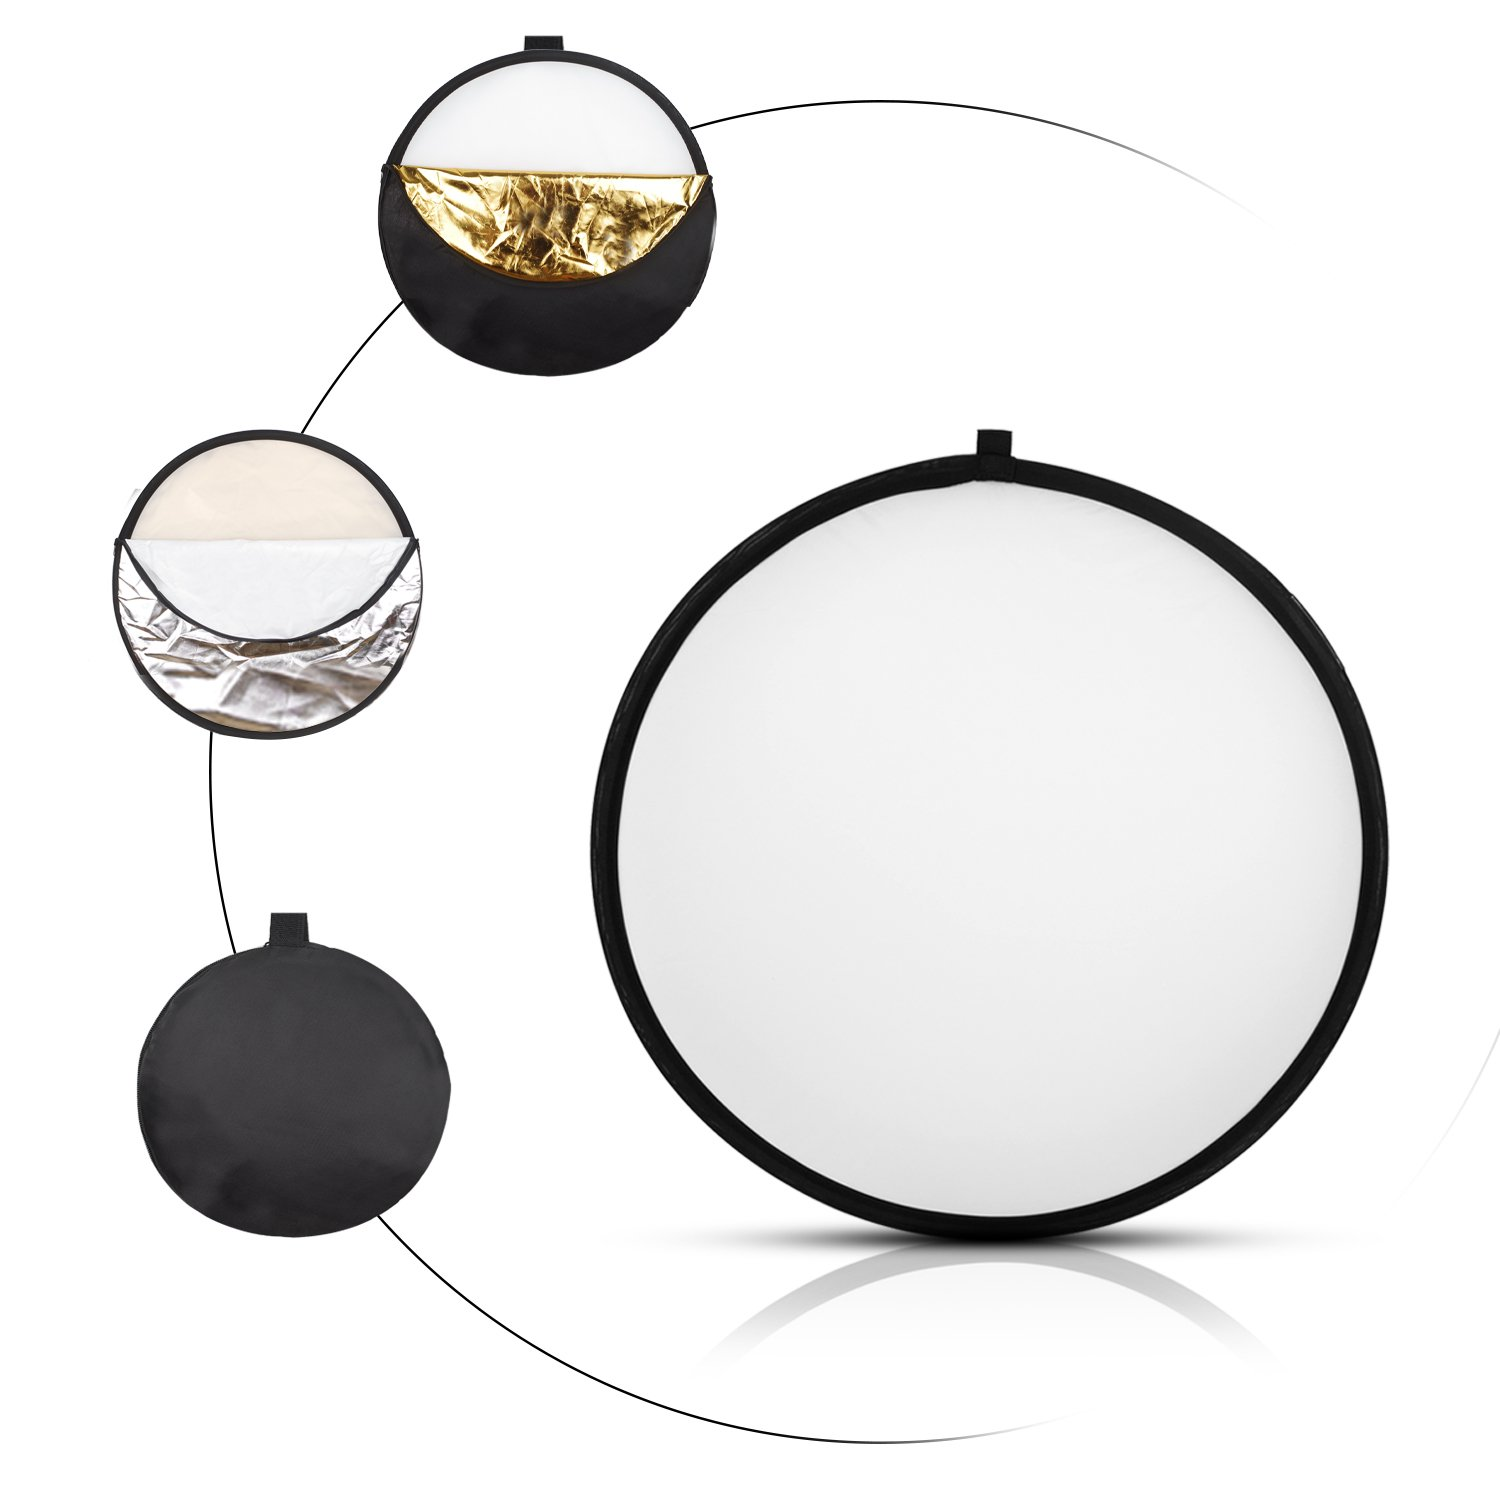 Kamisafe 32-inch/80cm 5 in 1 Portable Collapsible Multi-Disc Photography Studio Light Reflector with Carry Bag - Translucent, Silver, Gold, White and Black